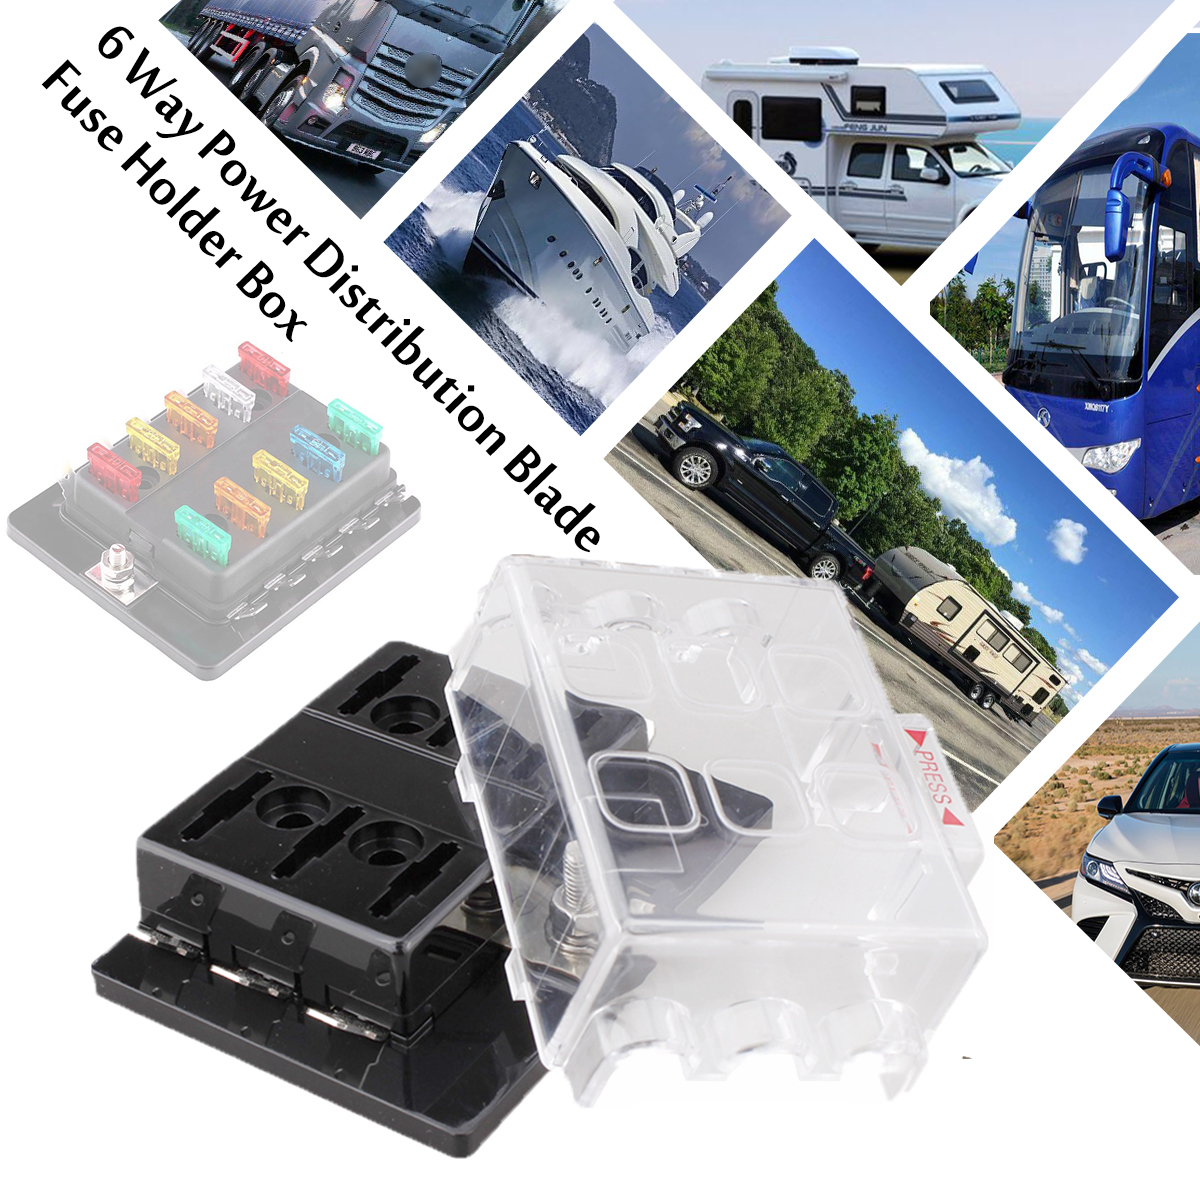 6-way atc fuse panel box holder 1 in 6 out for automotive car boat rv marine